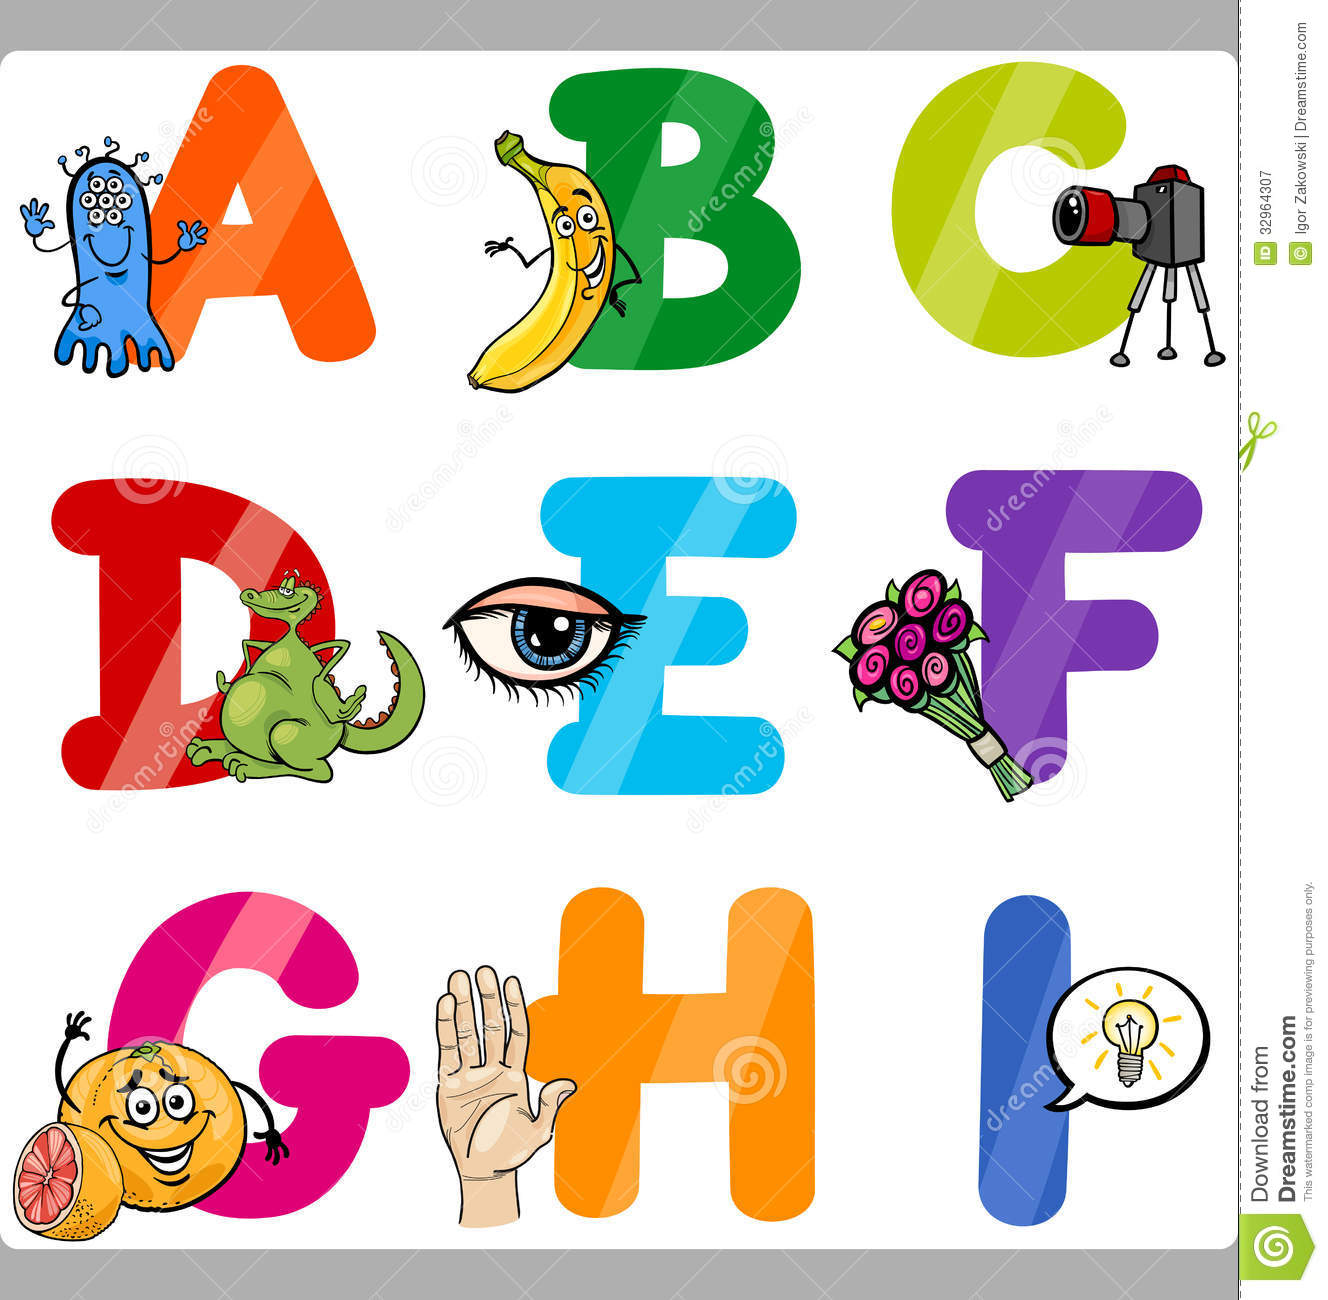 Free Download Letters Grude Interpretomics Co